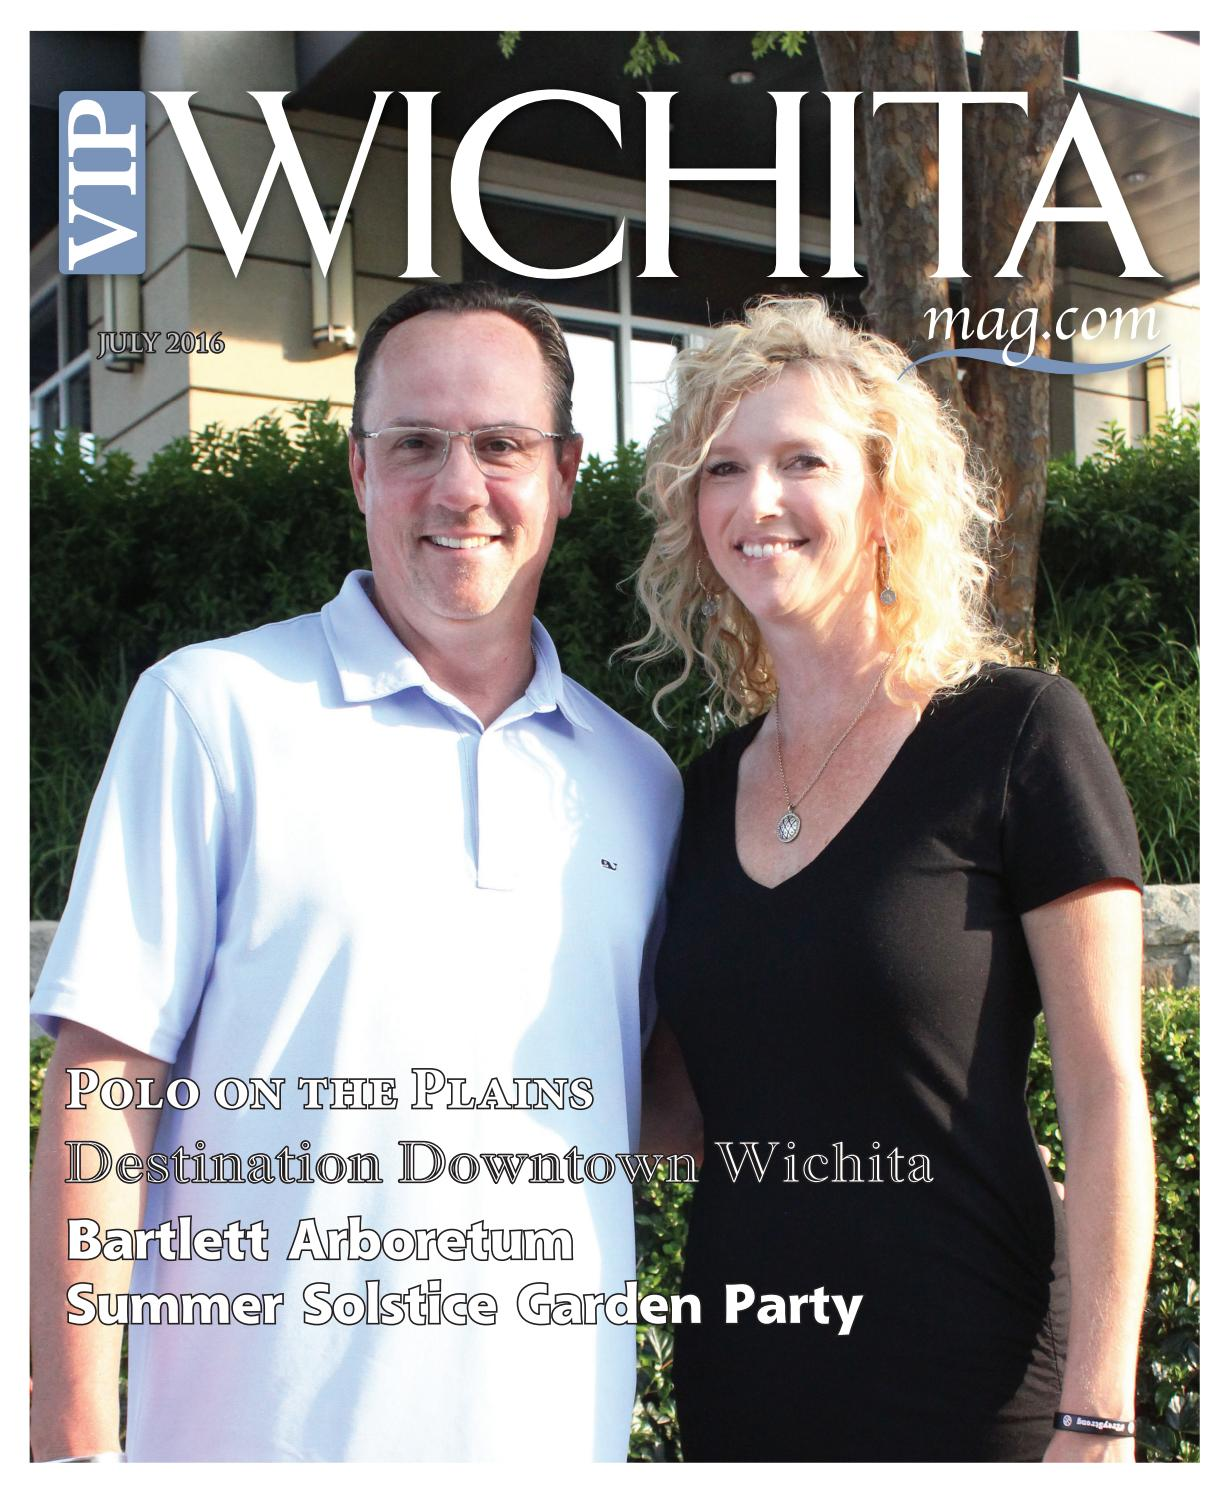 Vip Wichita Magazine July 2016 By Vip Wichita Magazine